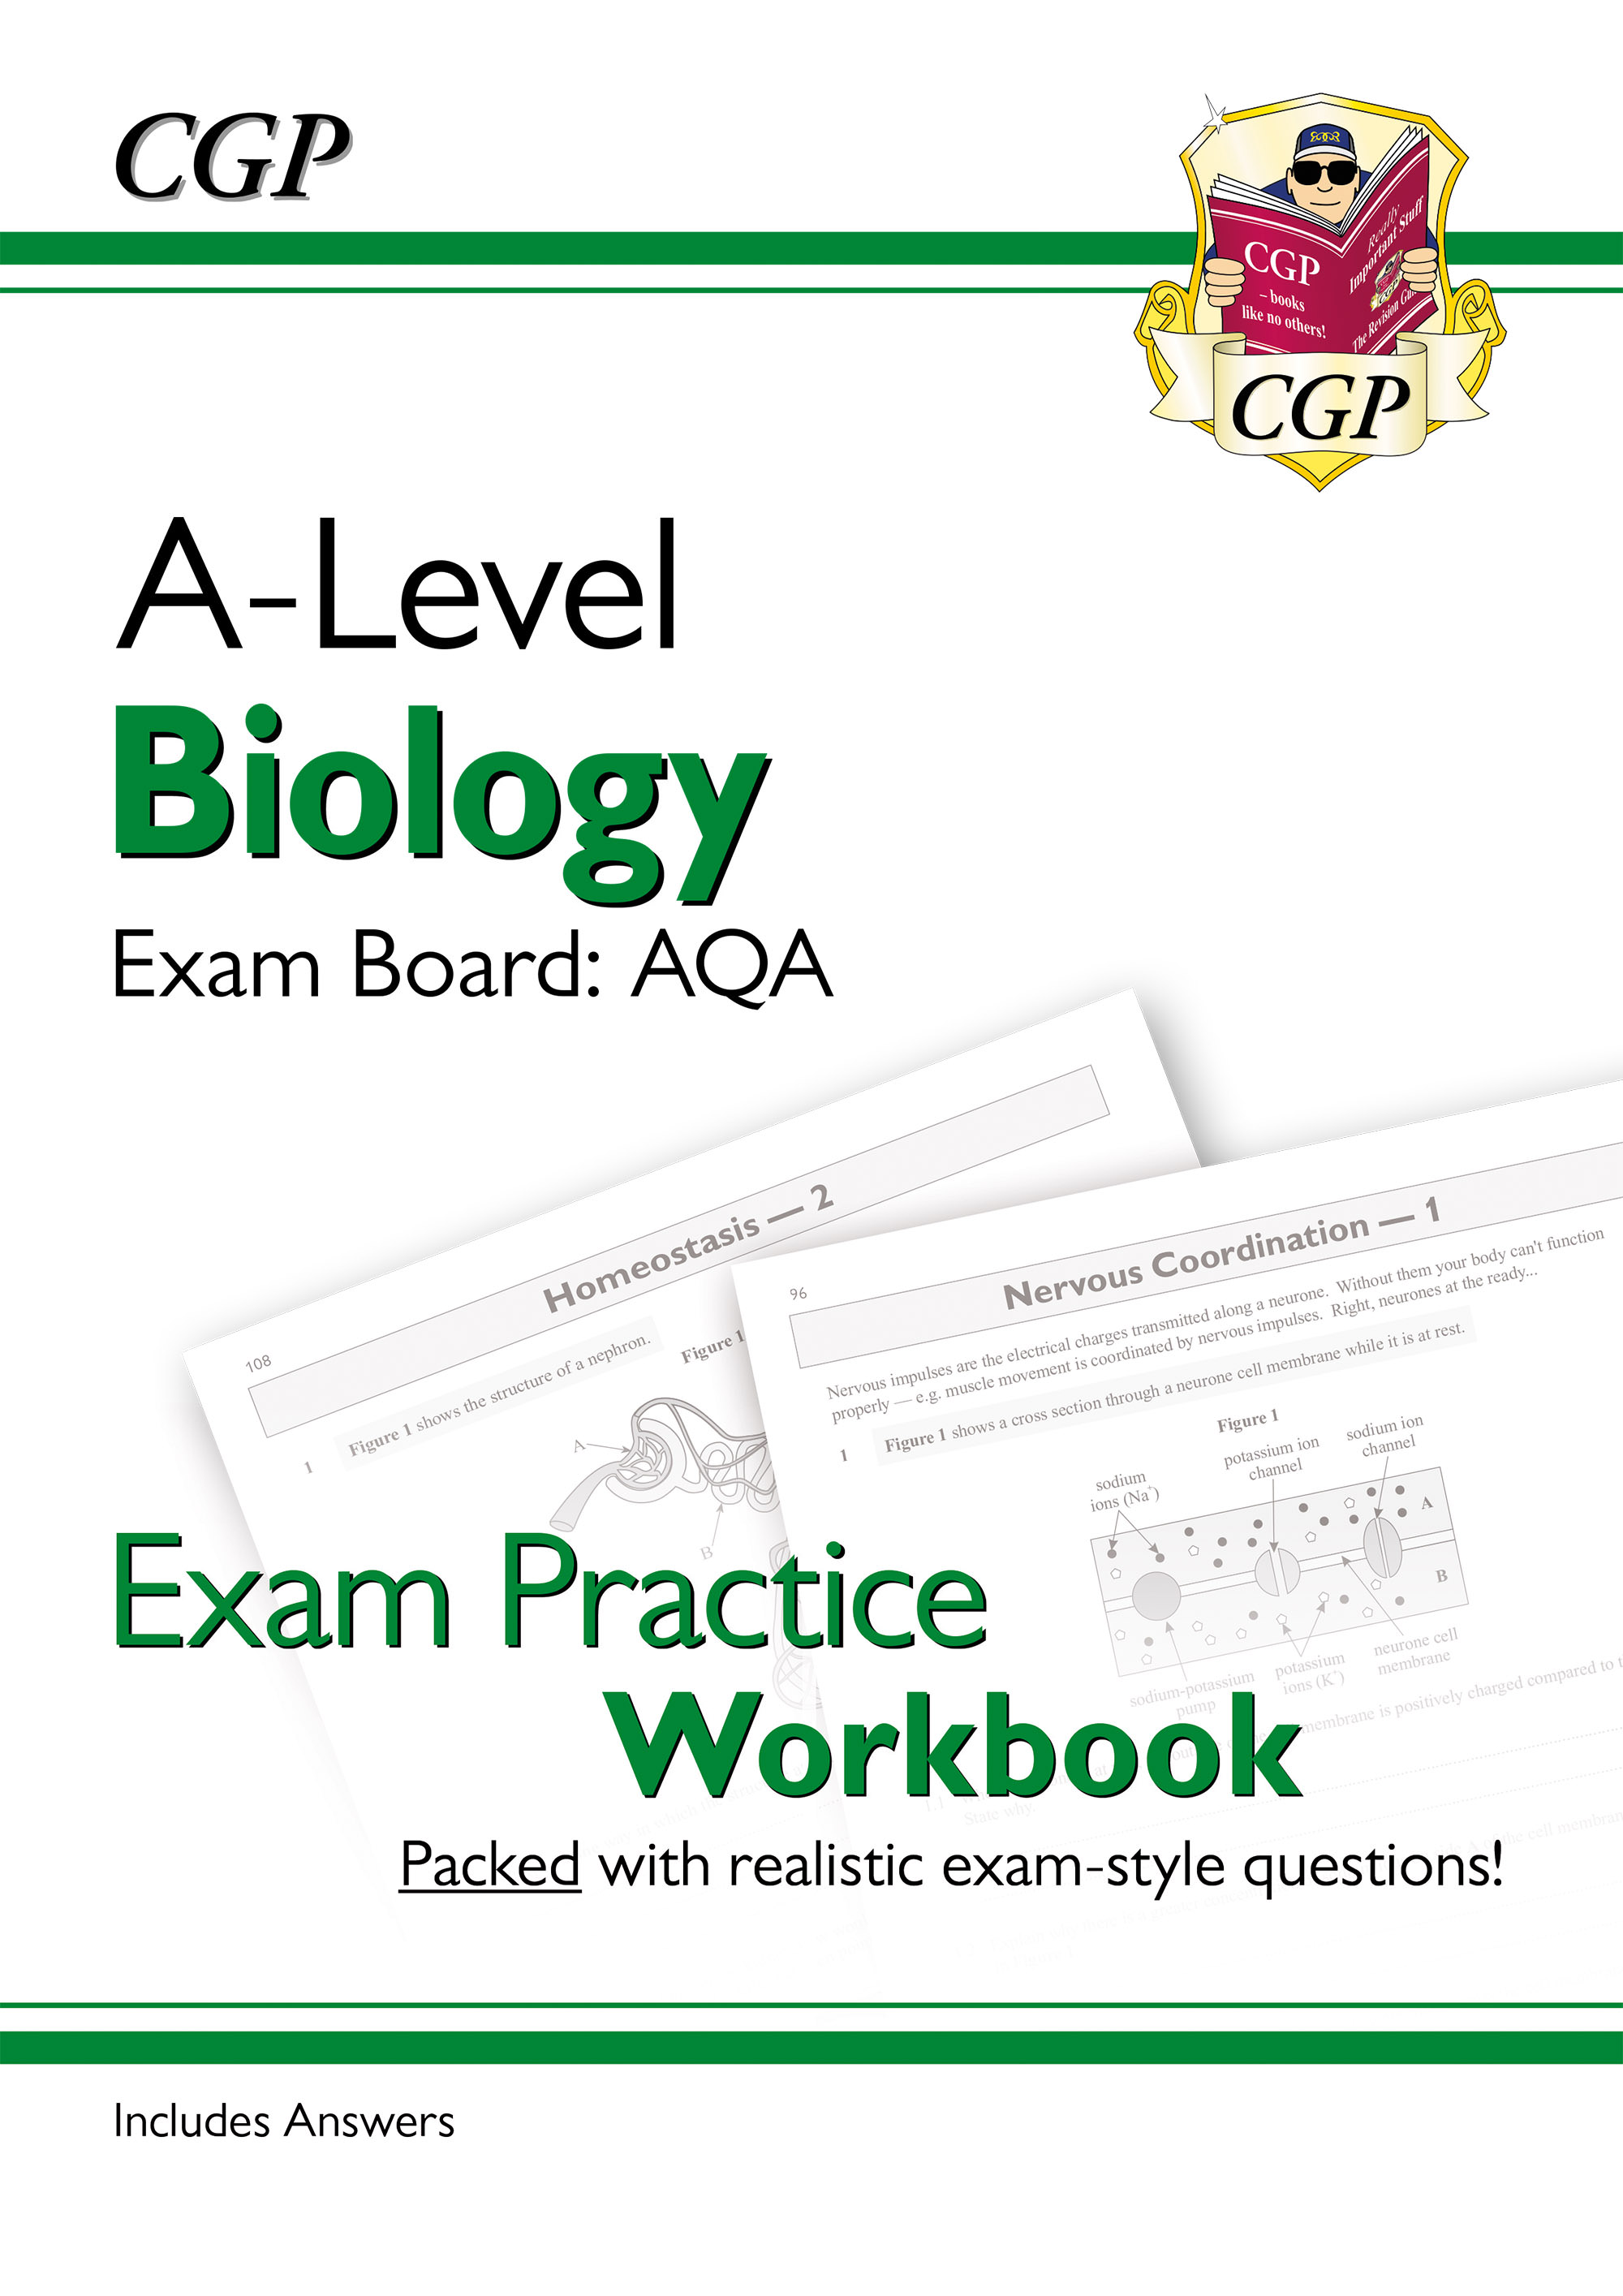 BAQ71D - New A-Level Biology: AQA Year 1 & 2 Exam Practice Workbook - includes Answers Online Editio